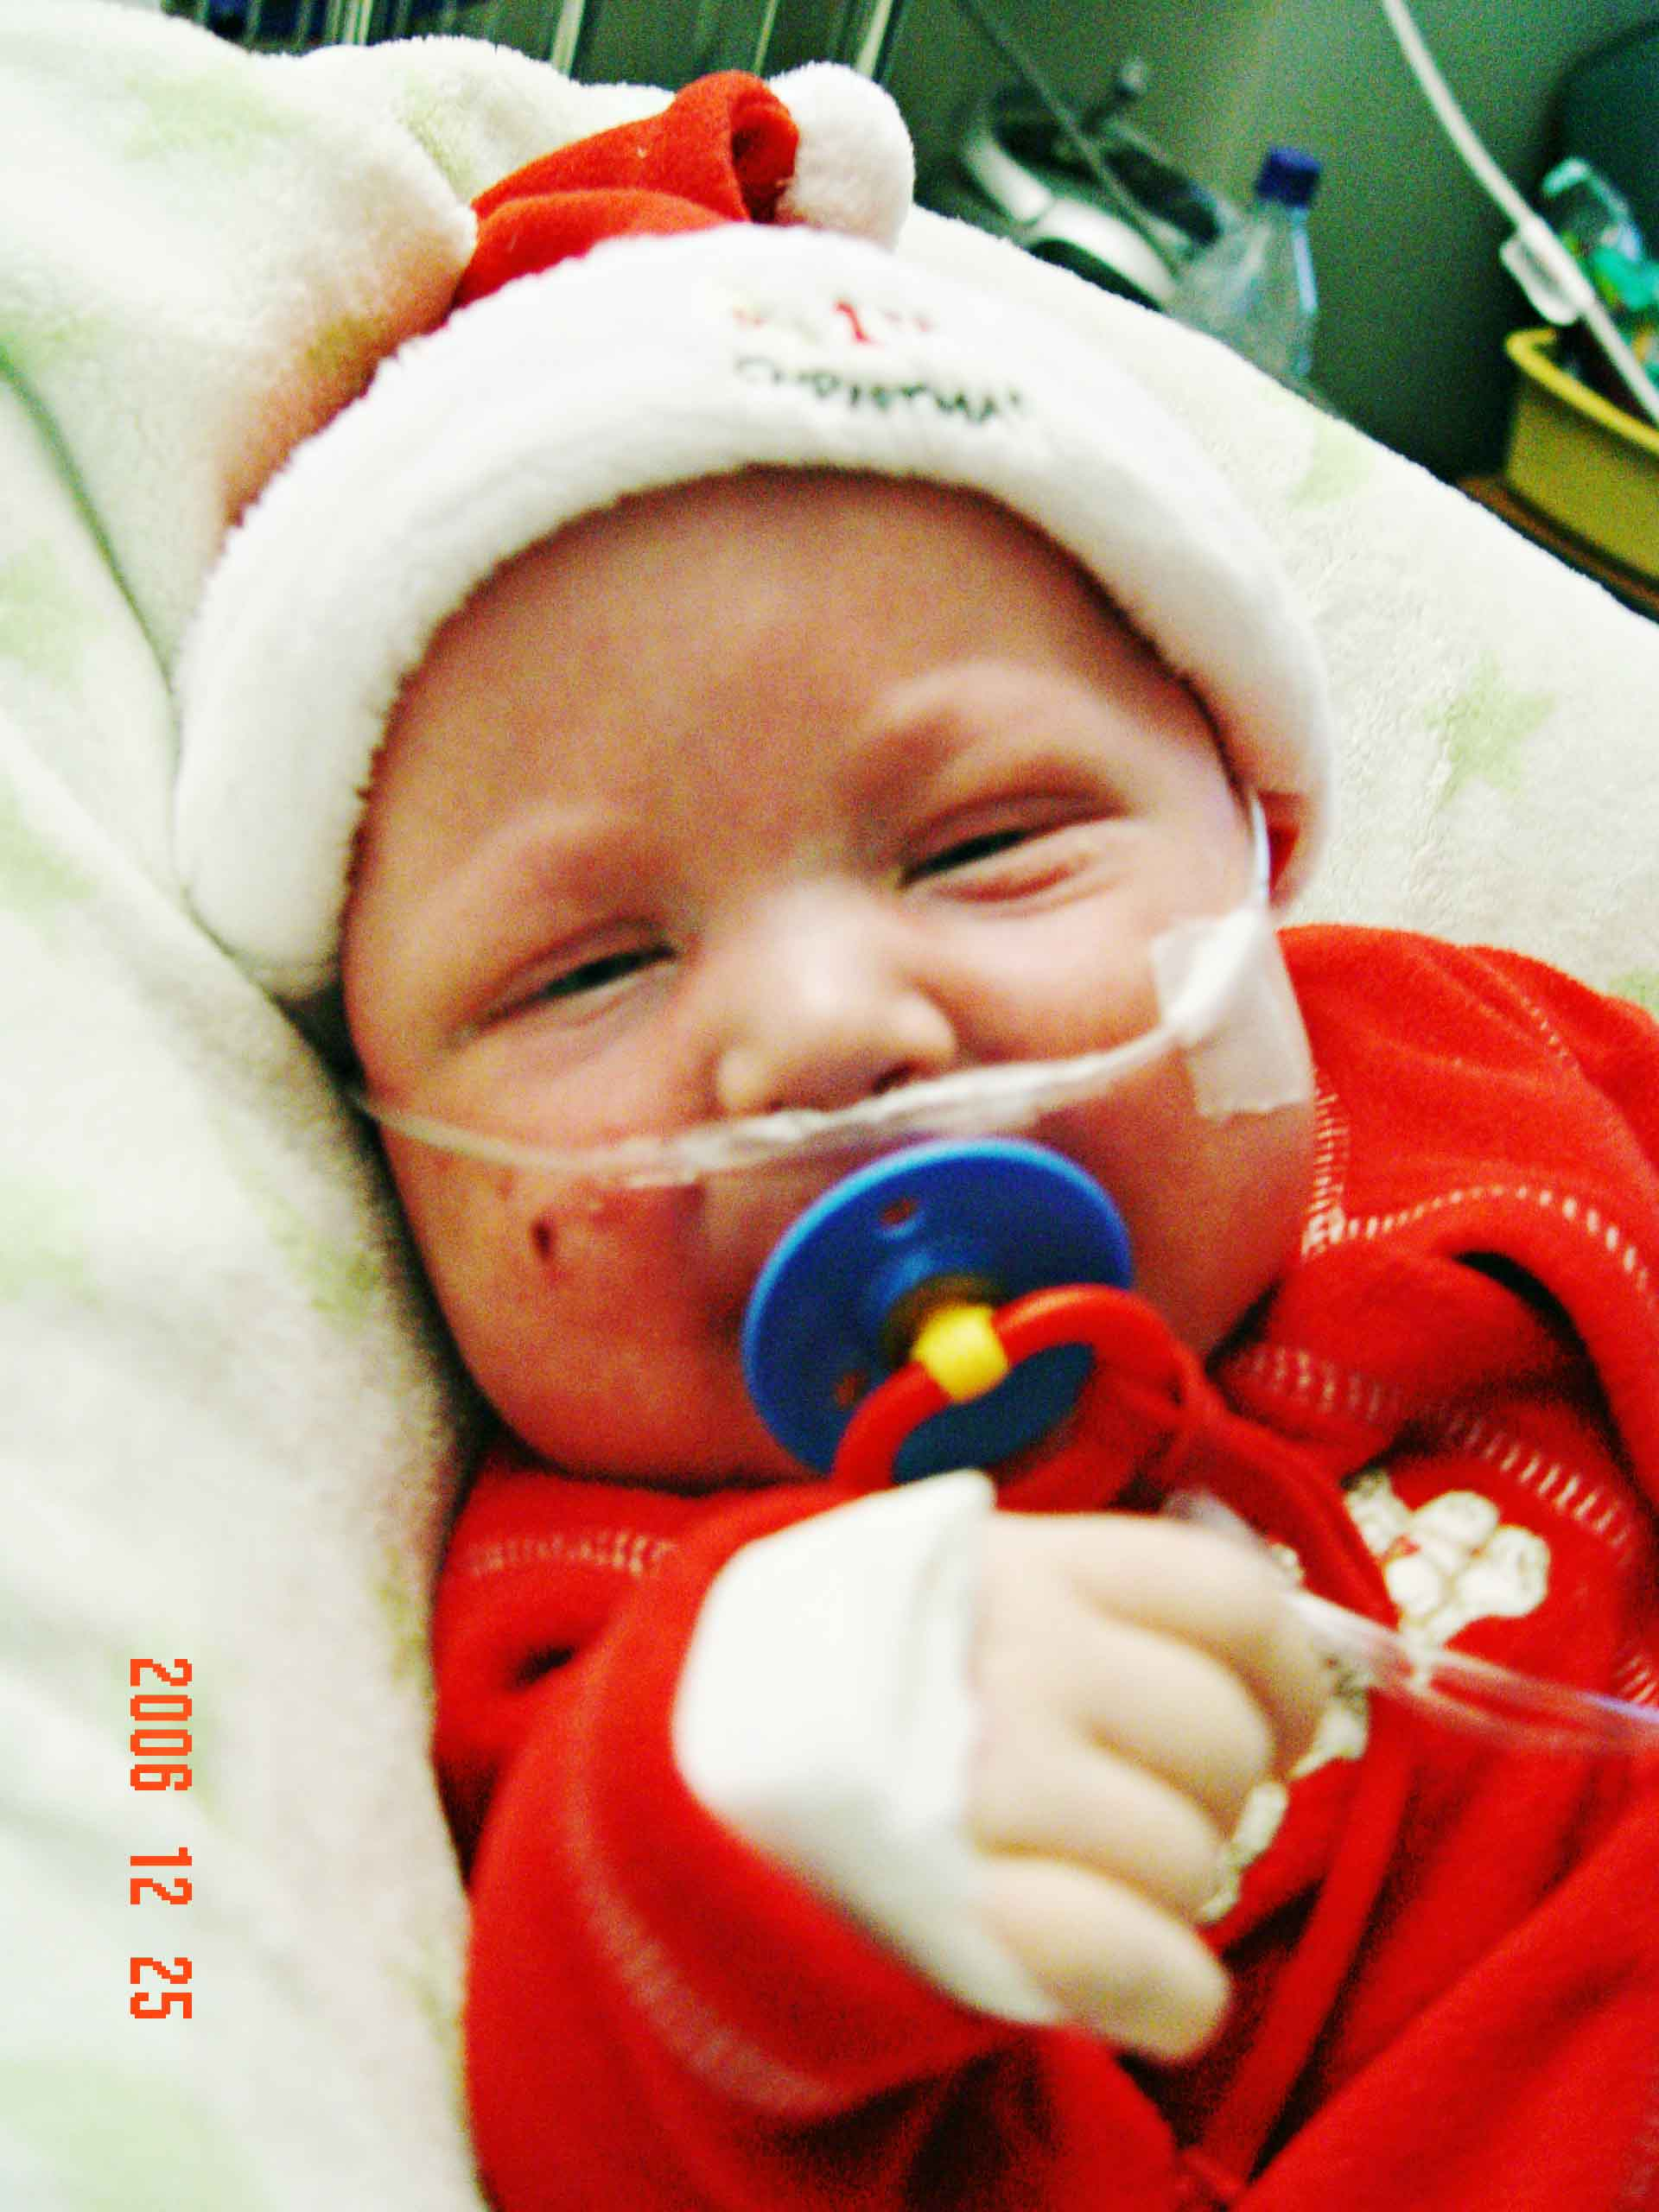 Christmas Miracle - Baby Jaymun makes it through severe complications after bone marrow transplant - weeks in intensive care